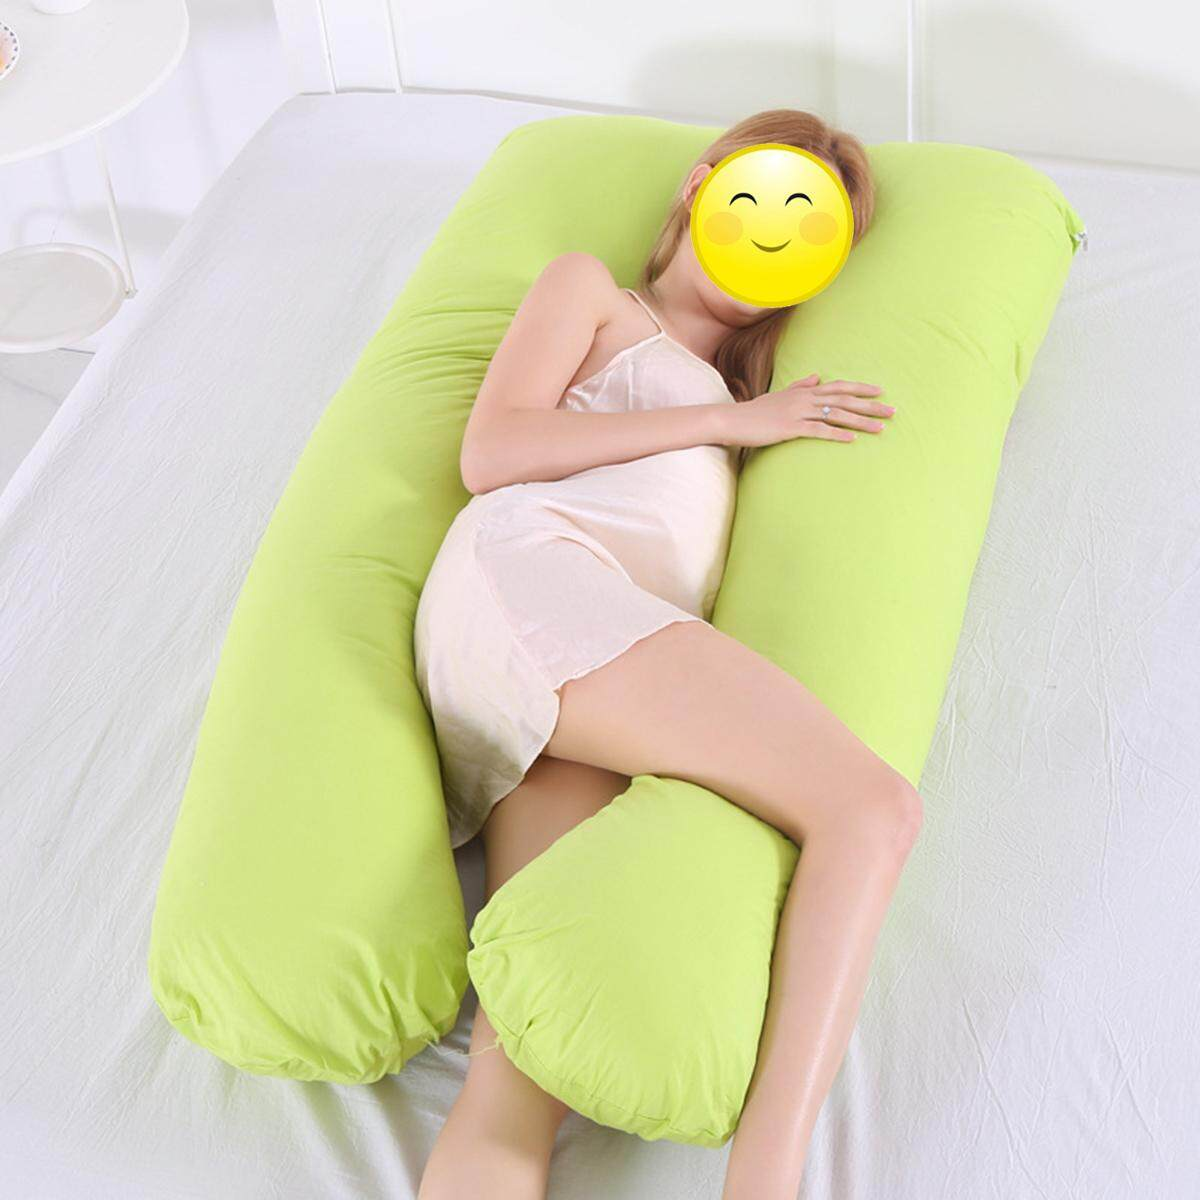 Pregnancy Body Pillow Cover U Shape Baby Maternity Comfort Bedding Cushion Case By Superbang.